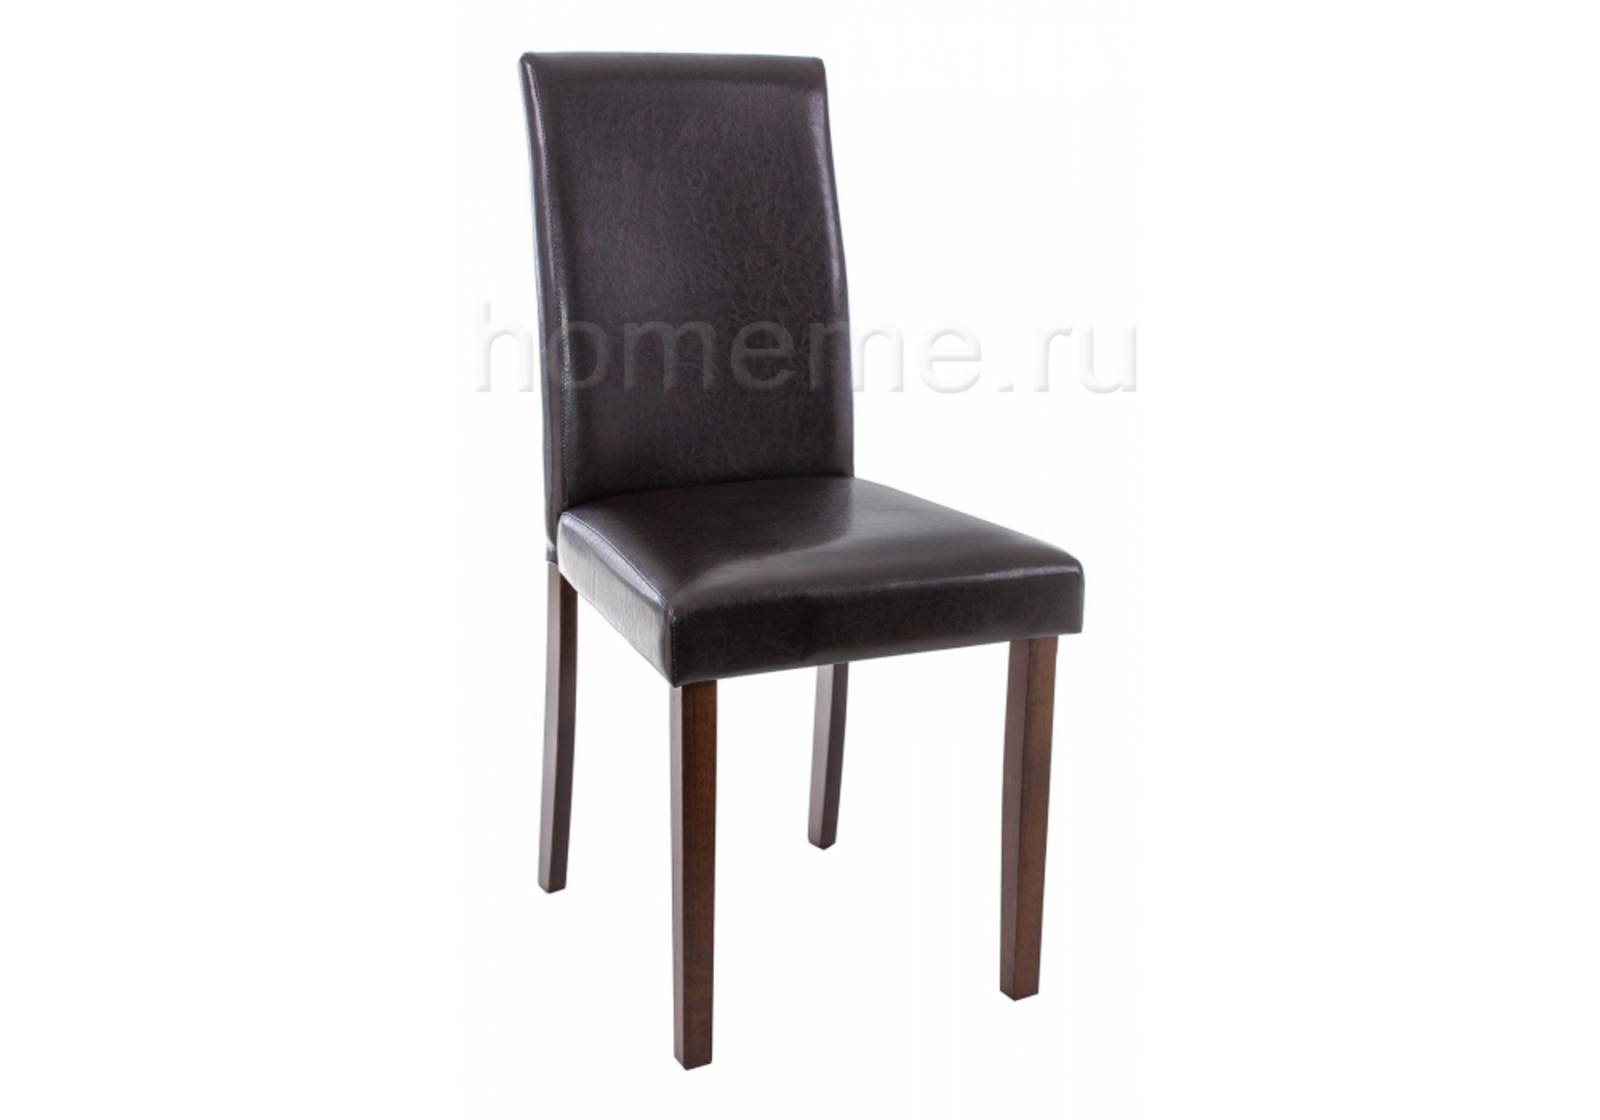 Стул HomeMe Стул Gross dirty oak / dark brown 11011 от Homeme.ru